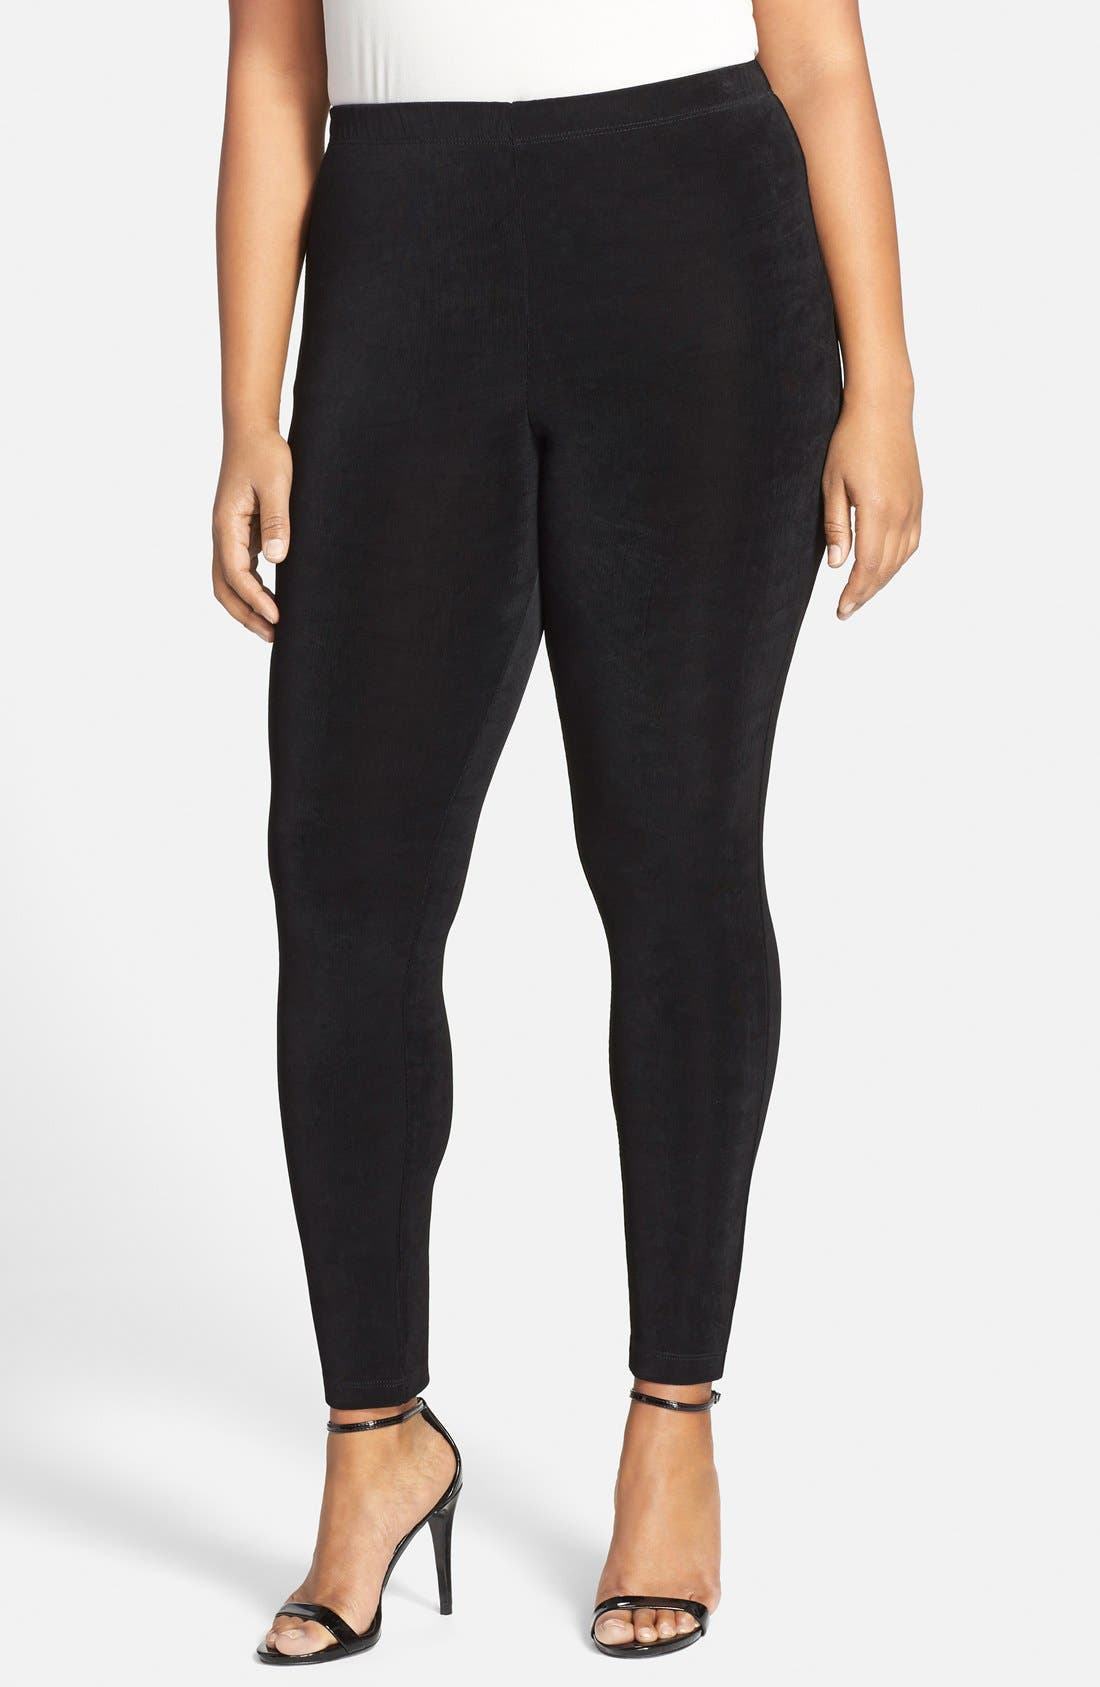 Vikki Vi Stretch Knit Slim Pants (Plus Size)